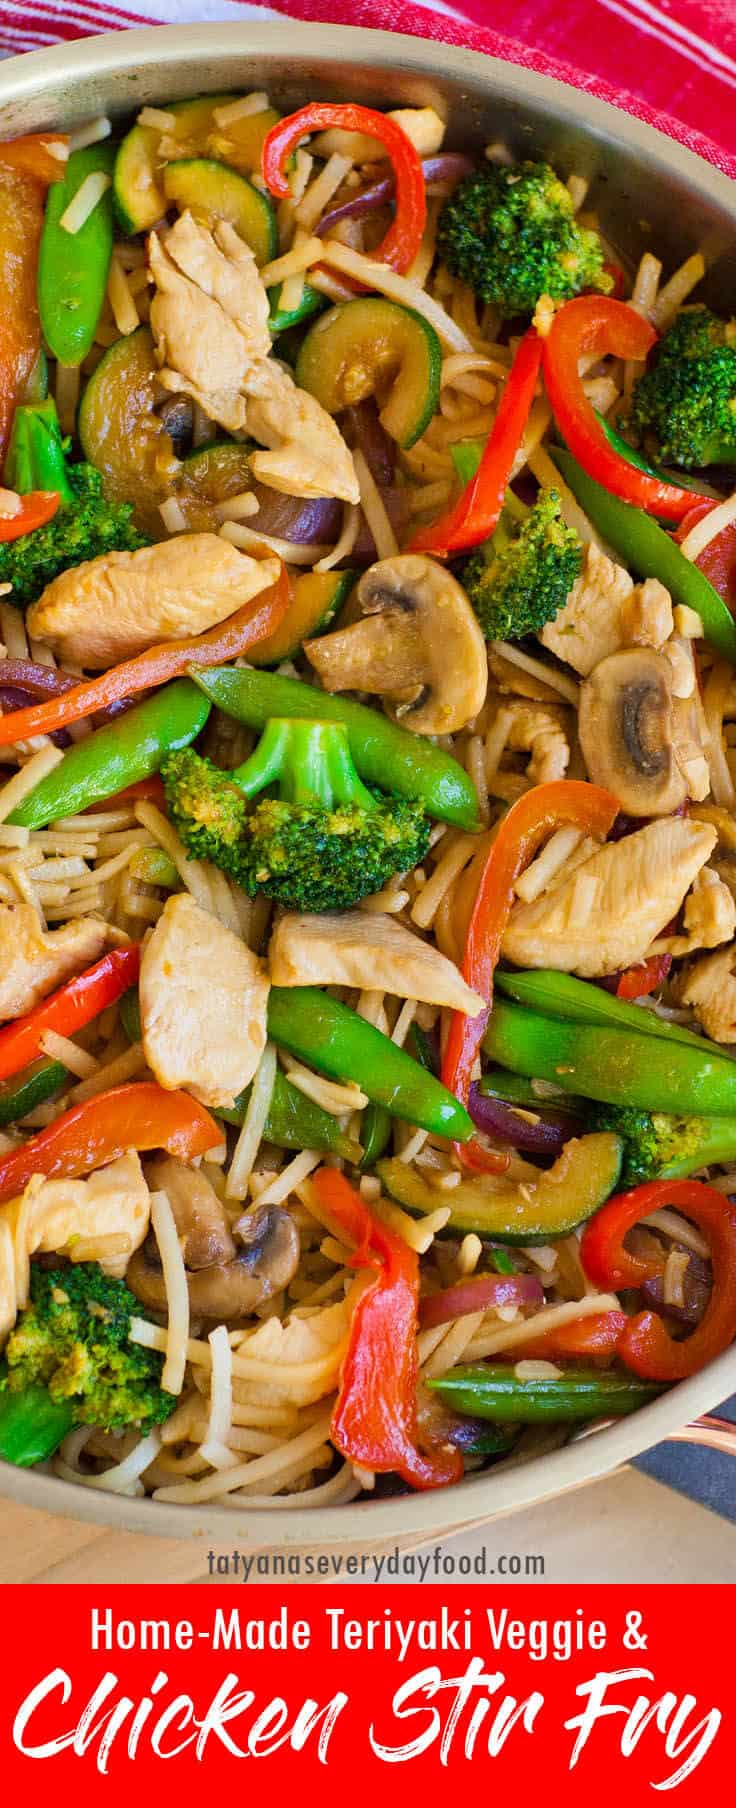 Chicken Teriyaki Stir Fry video recipe